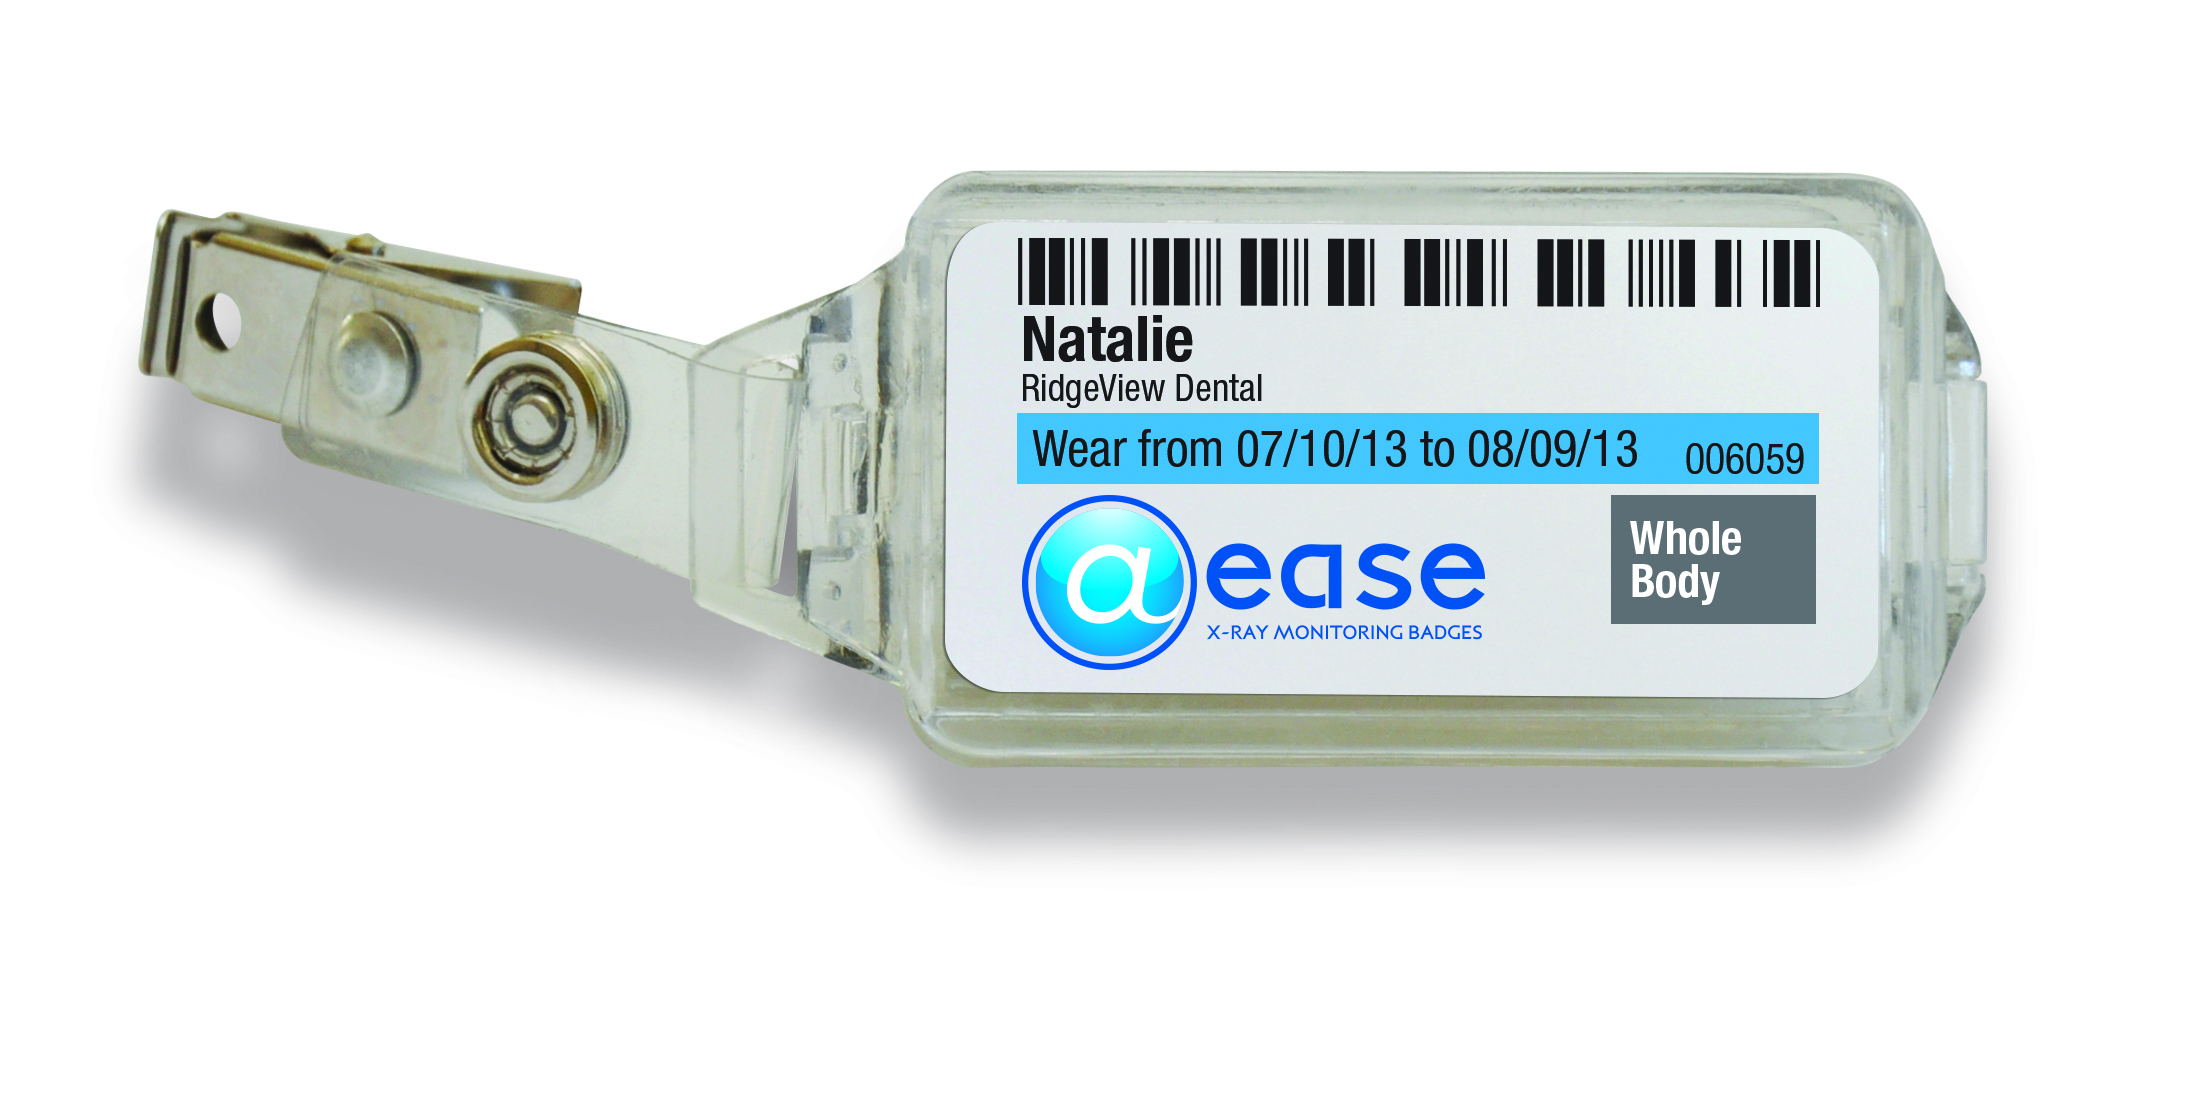 @ease Personalized X-ray Monitoring Badges